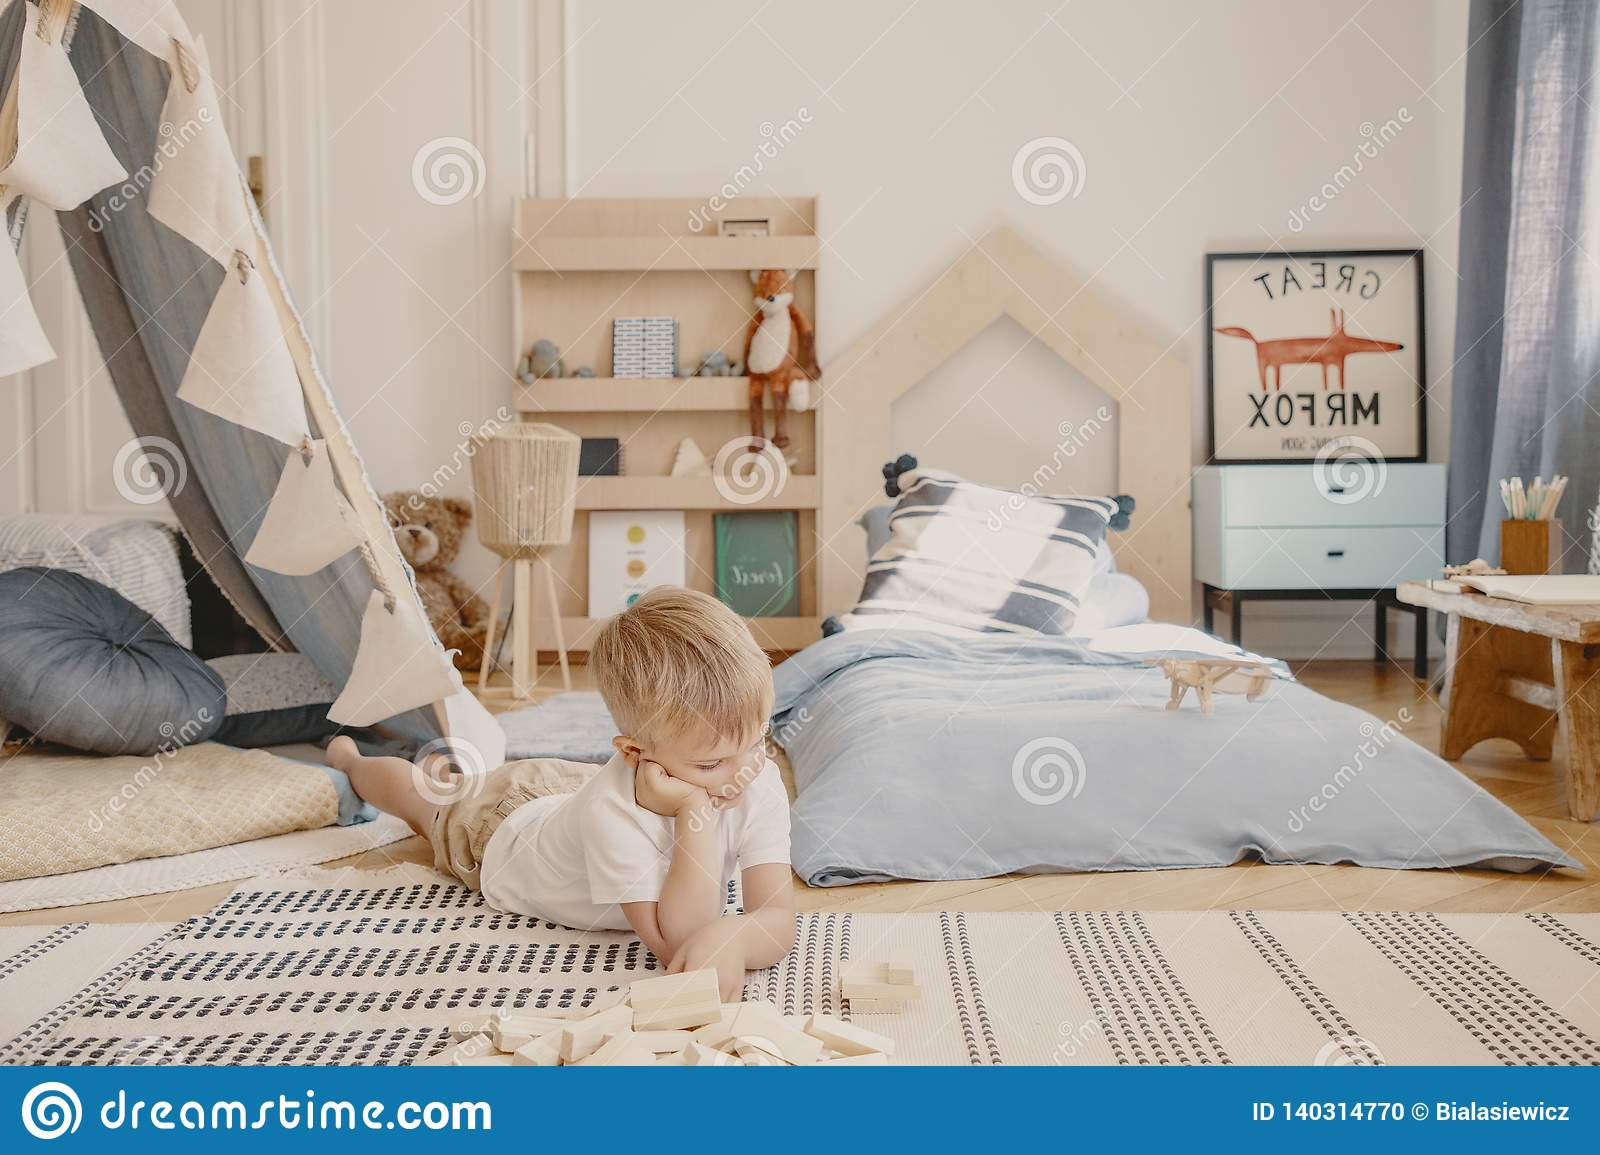 Cute Little Boy Laying On The Floor Of His Stylish Scandinavian Bedroom Real Photo Stock Photo Image Of Bedroom Cushions 140314770